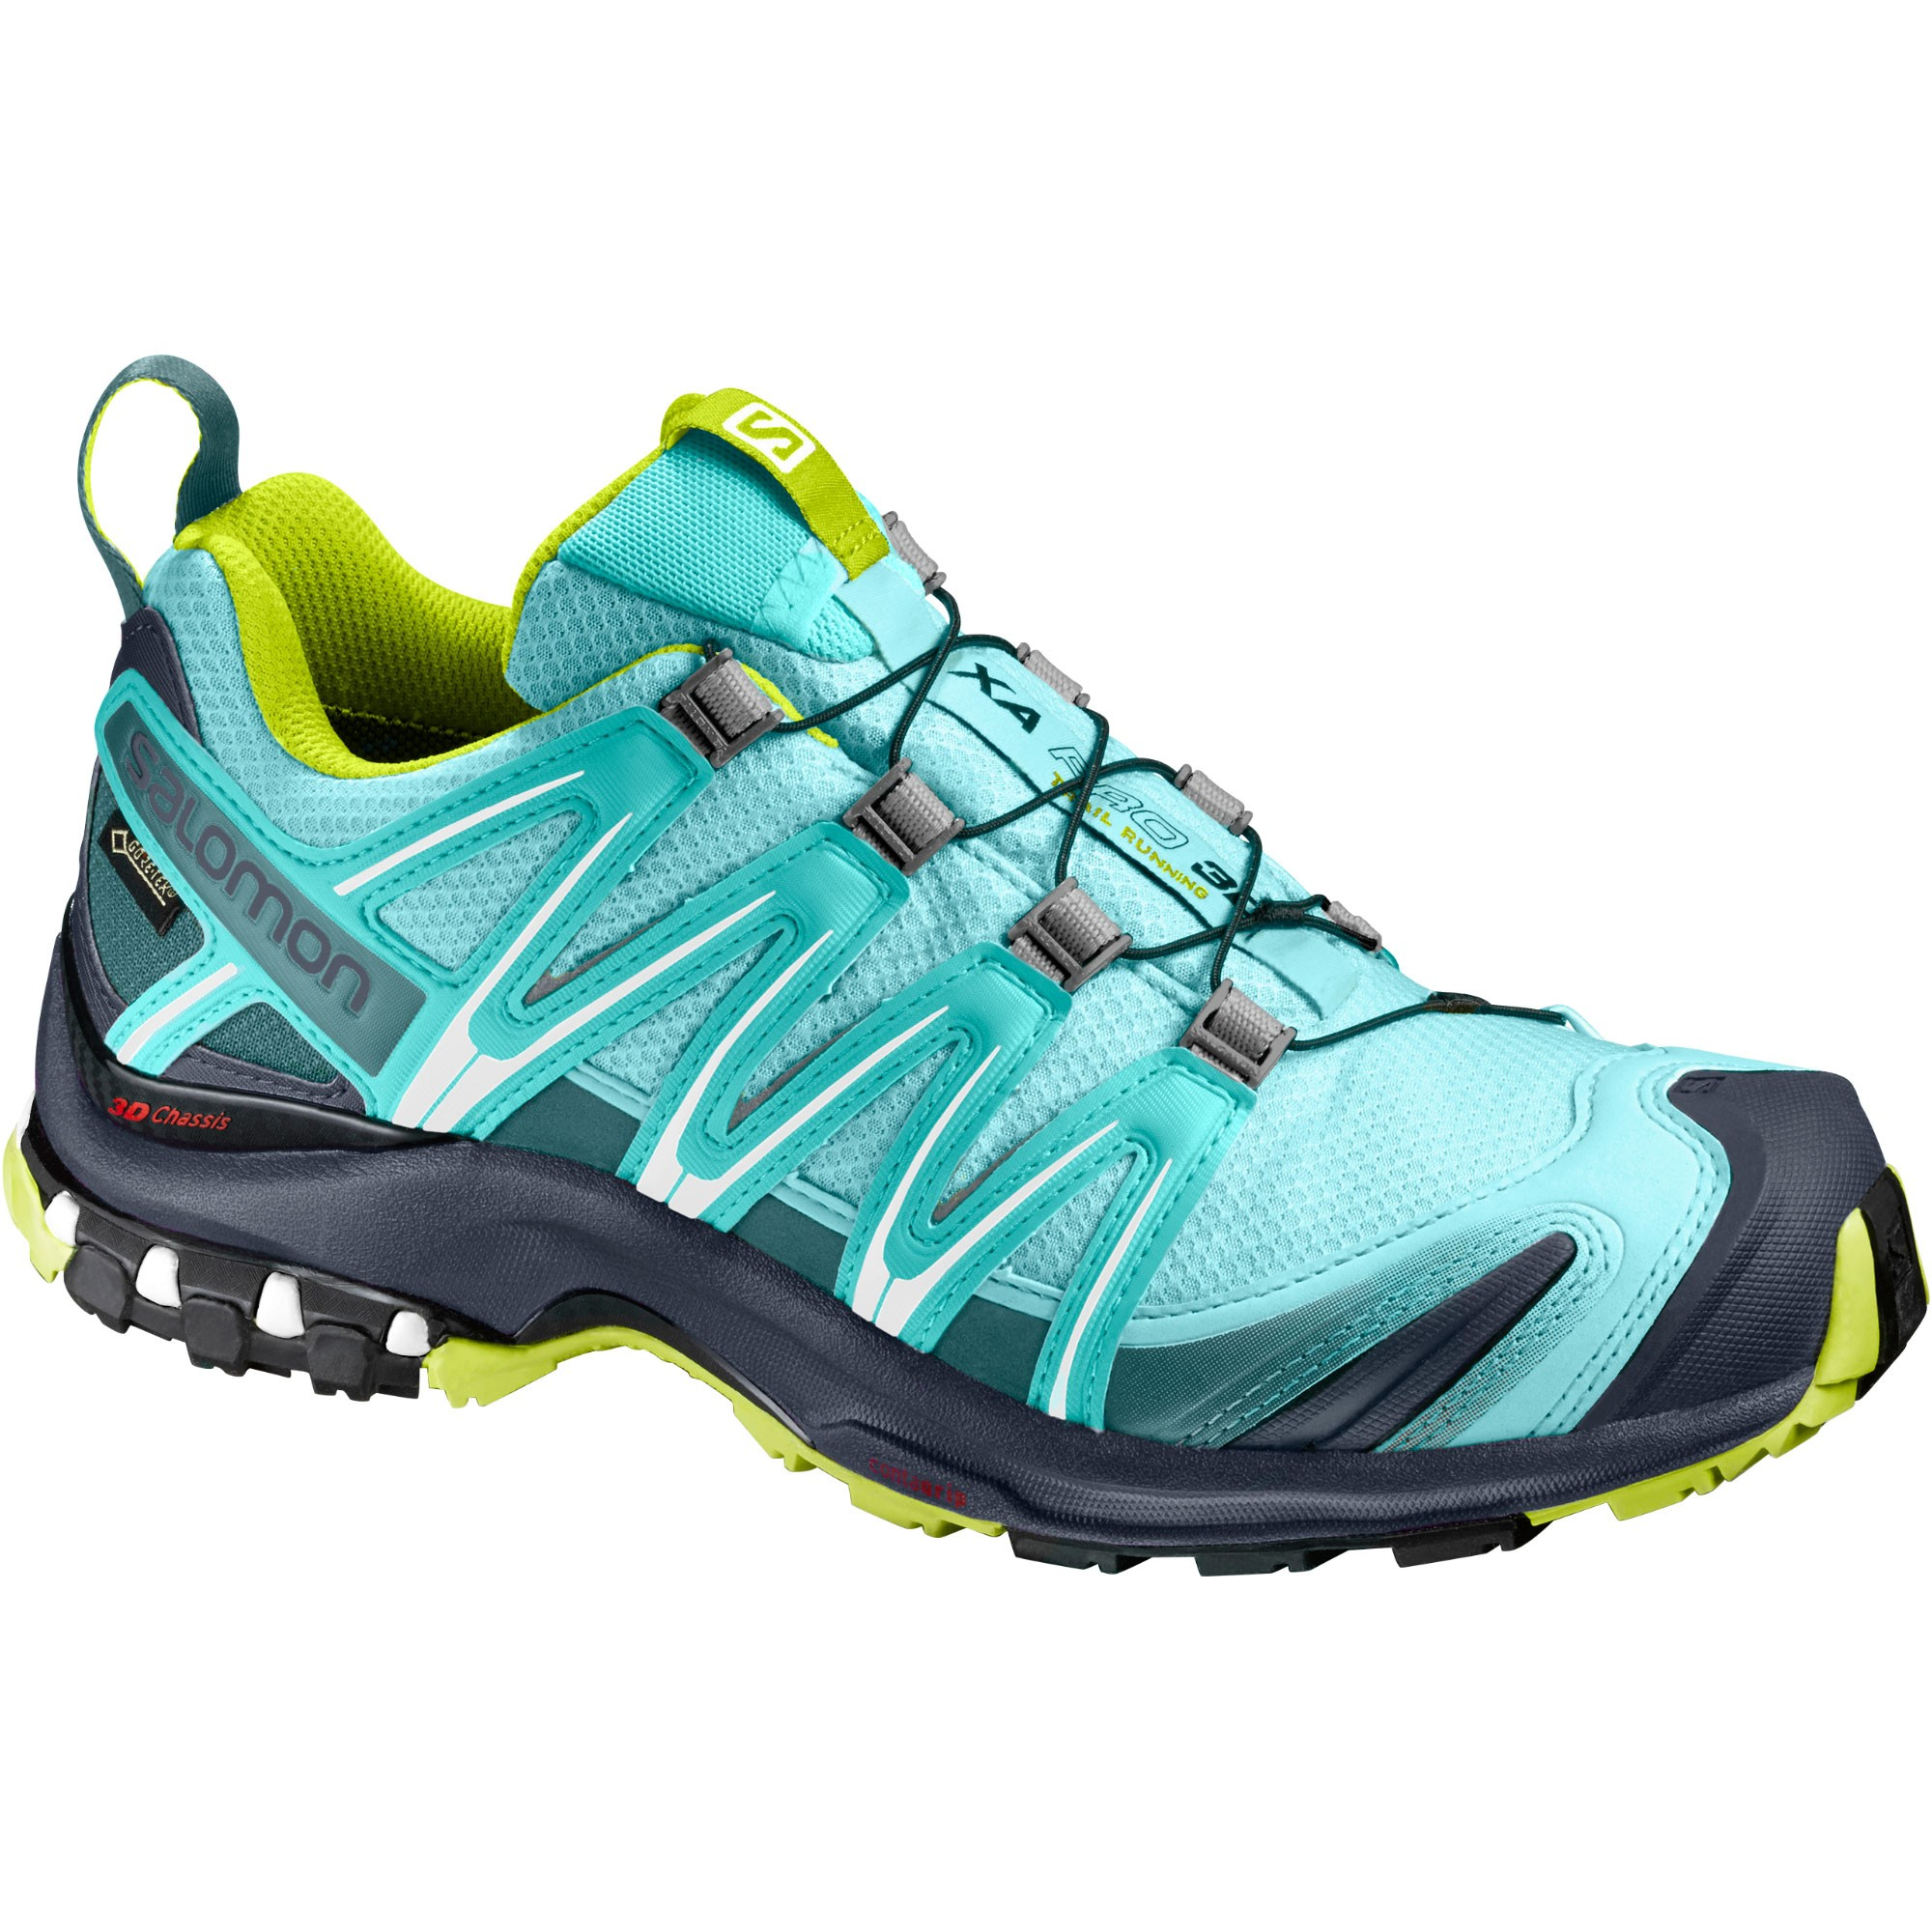 SALOMON - Women's XA PRO 3D GTX Trail Running Shoe